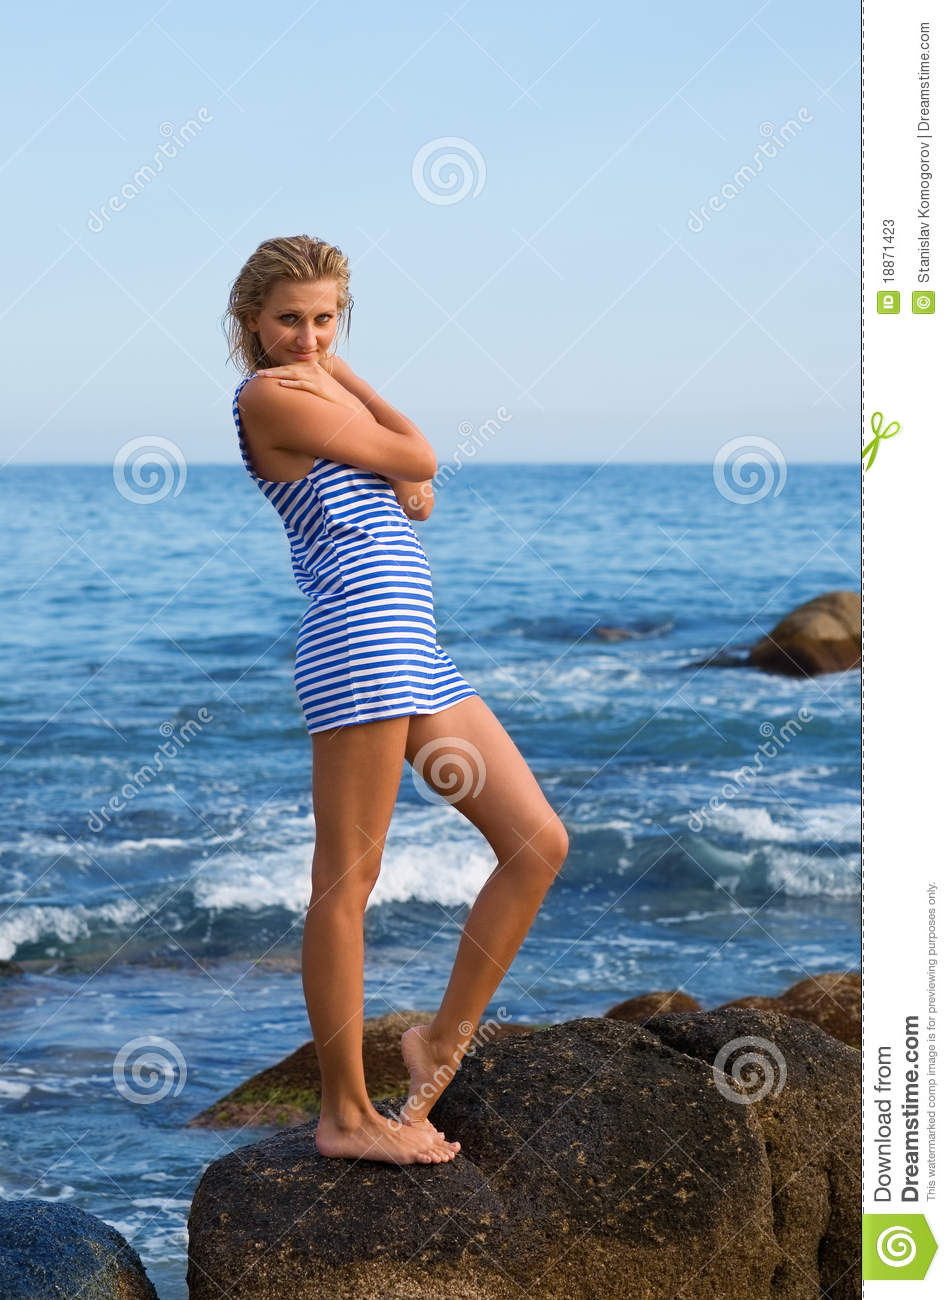 Attractive young woman on a rocky seashore.